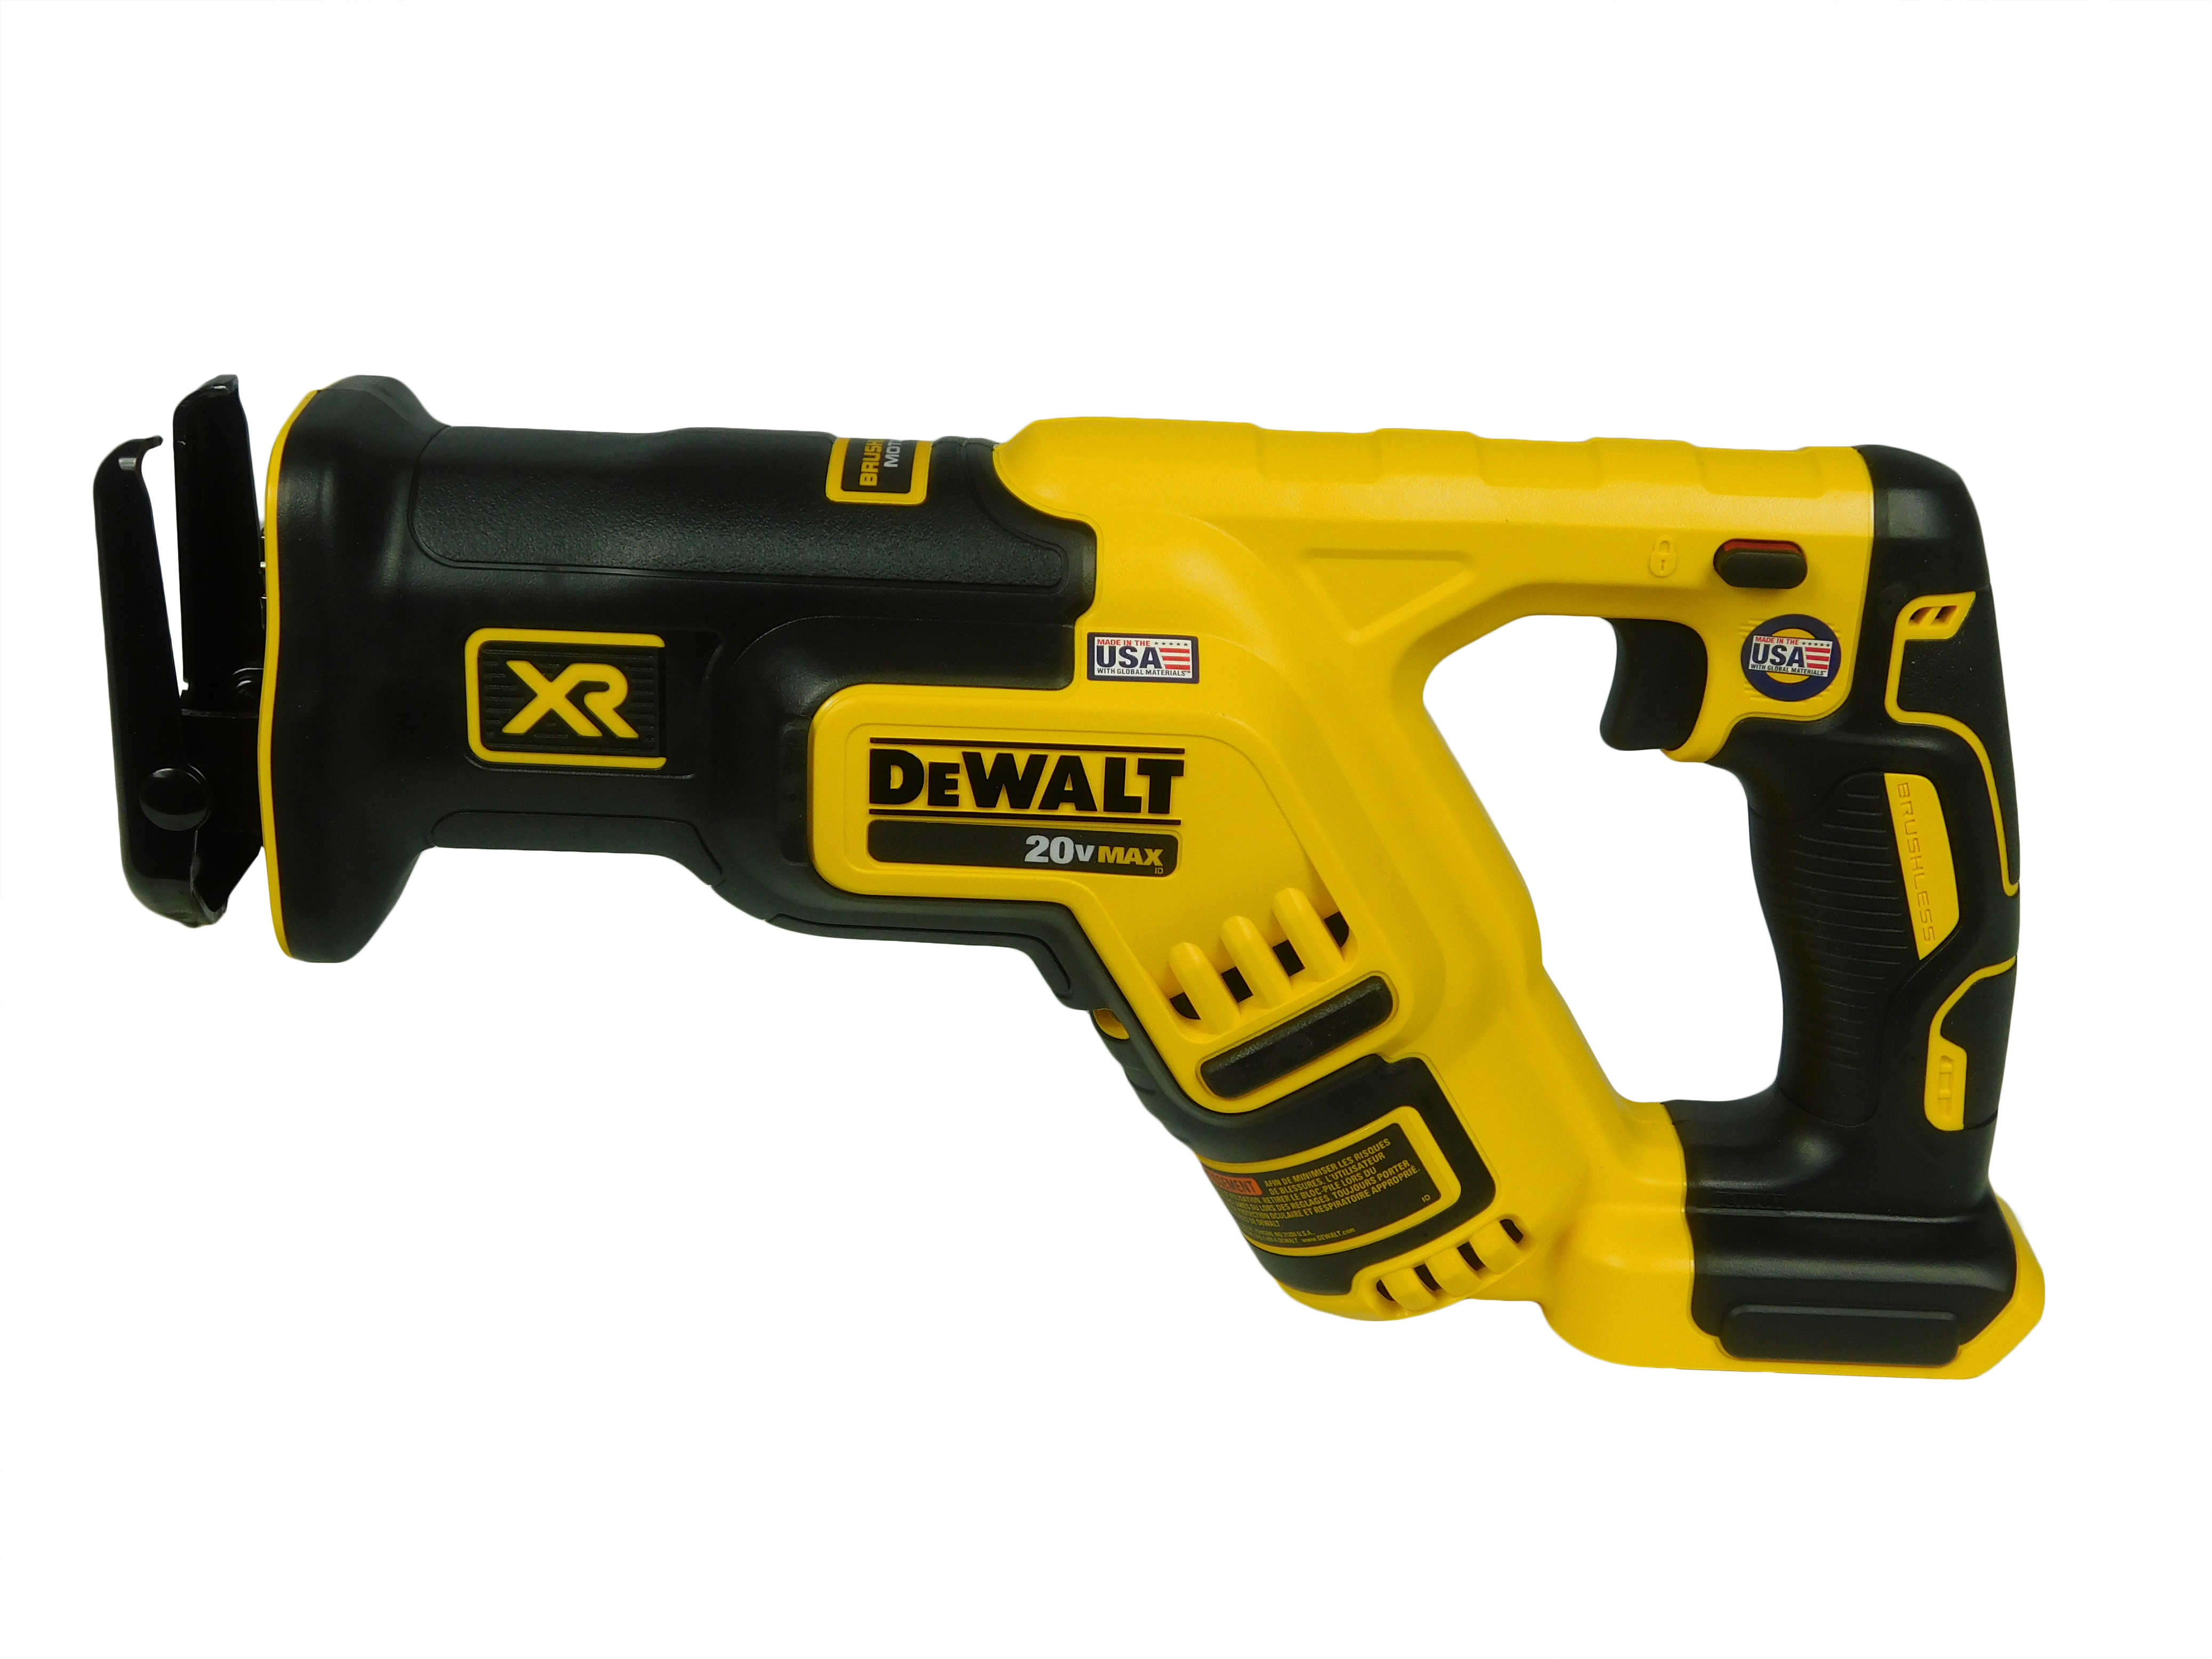 Dewalt dcs367b 20v max xr brushless compact reciprocating saw bare dewalt dcs367b 20v max xr brushless compact reciprocating saw bare tool dcs367 greentooth Image collections